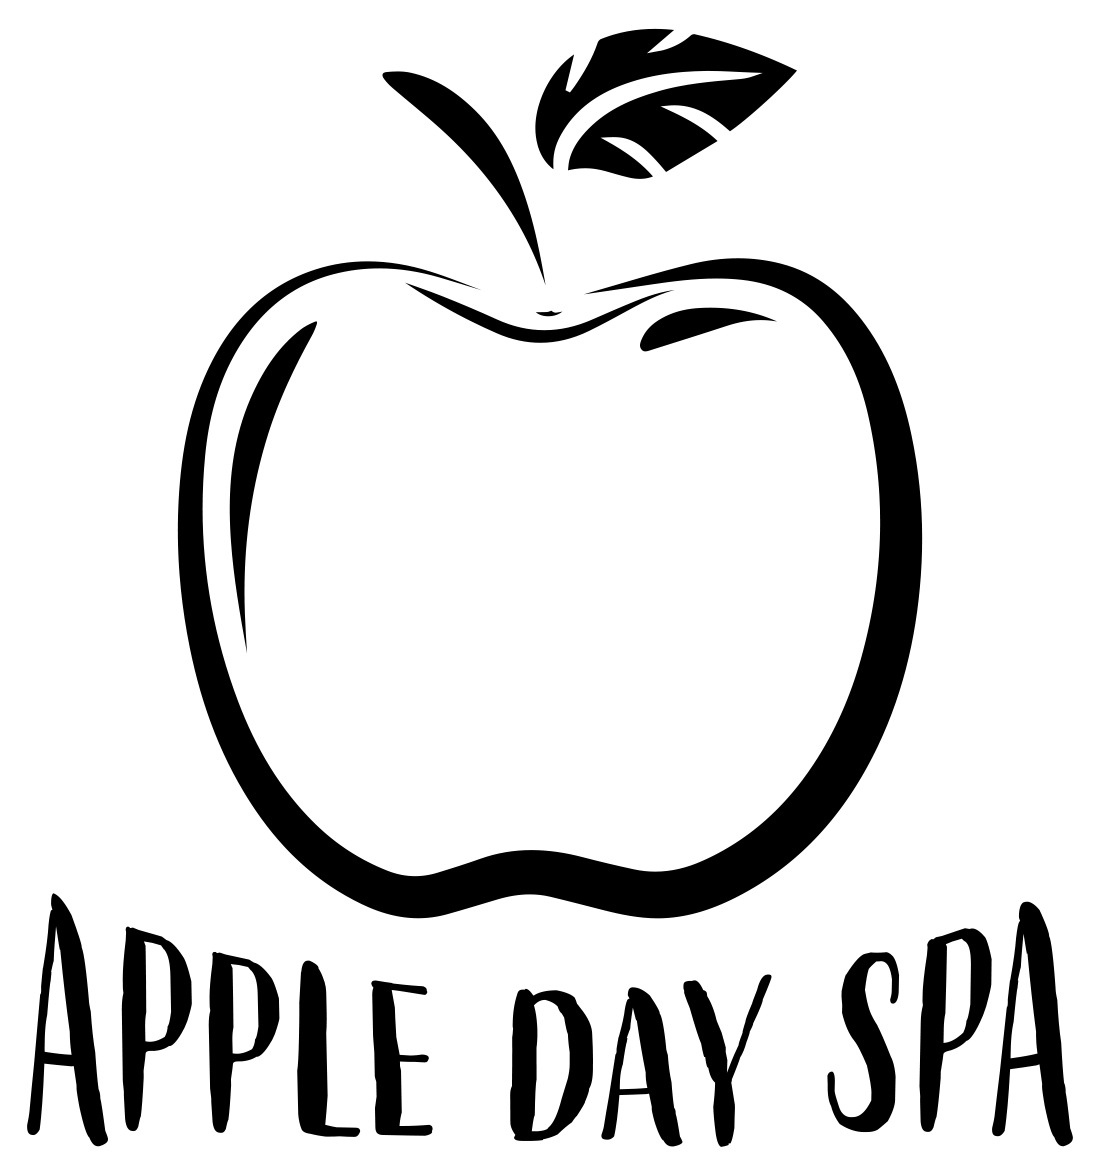 Apple Day Spa & Salon | Best Hair Salon in Honesdale, PA